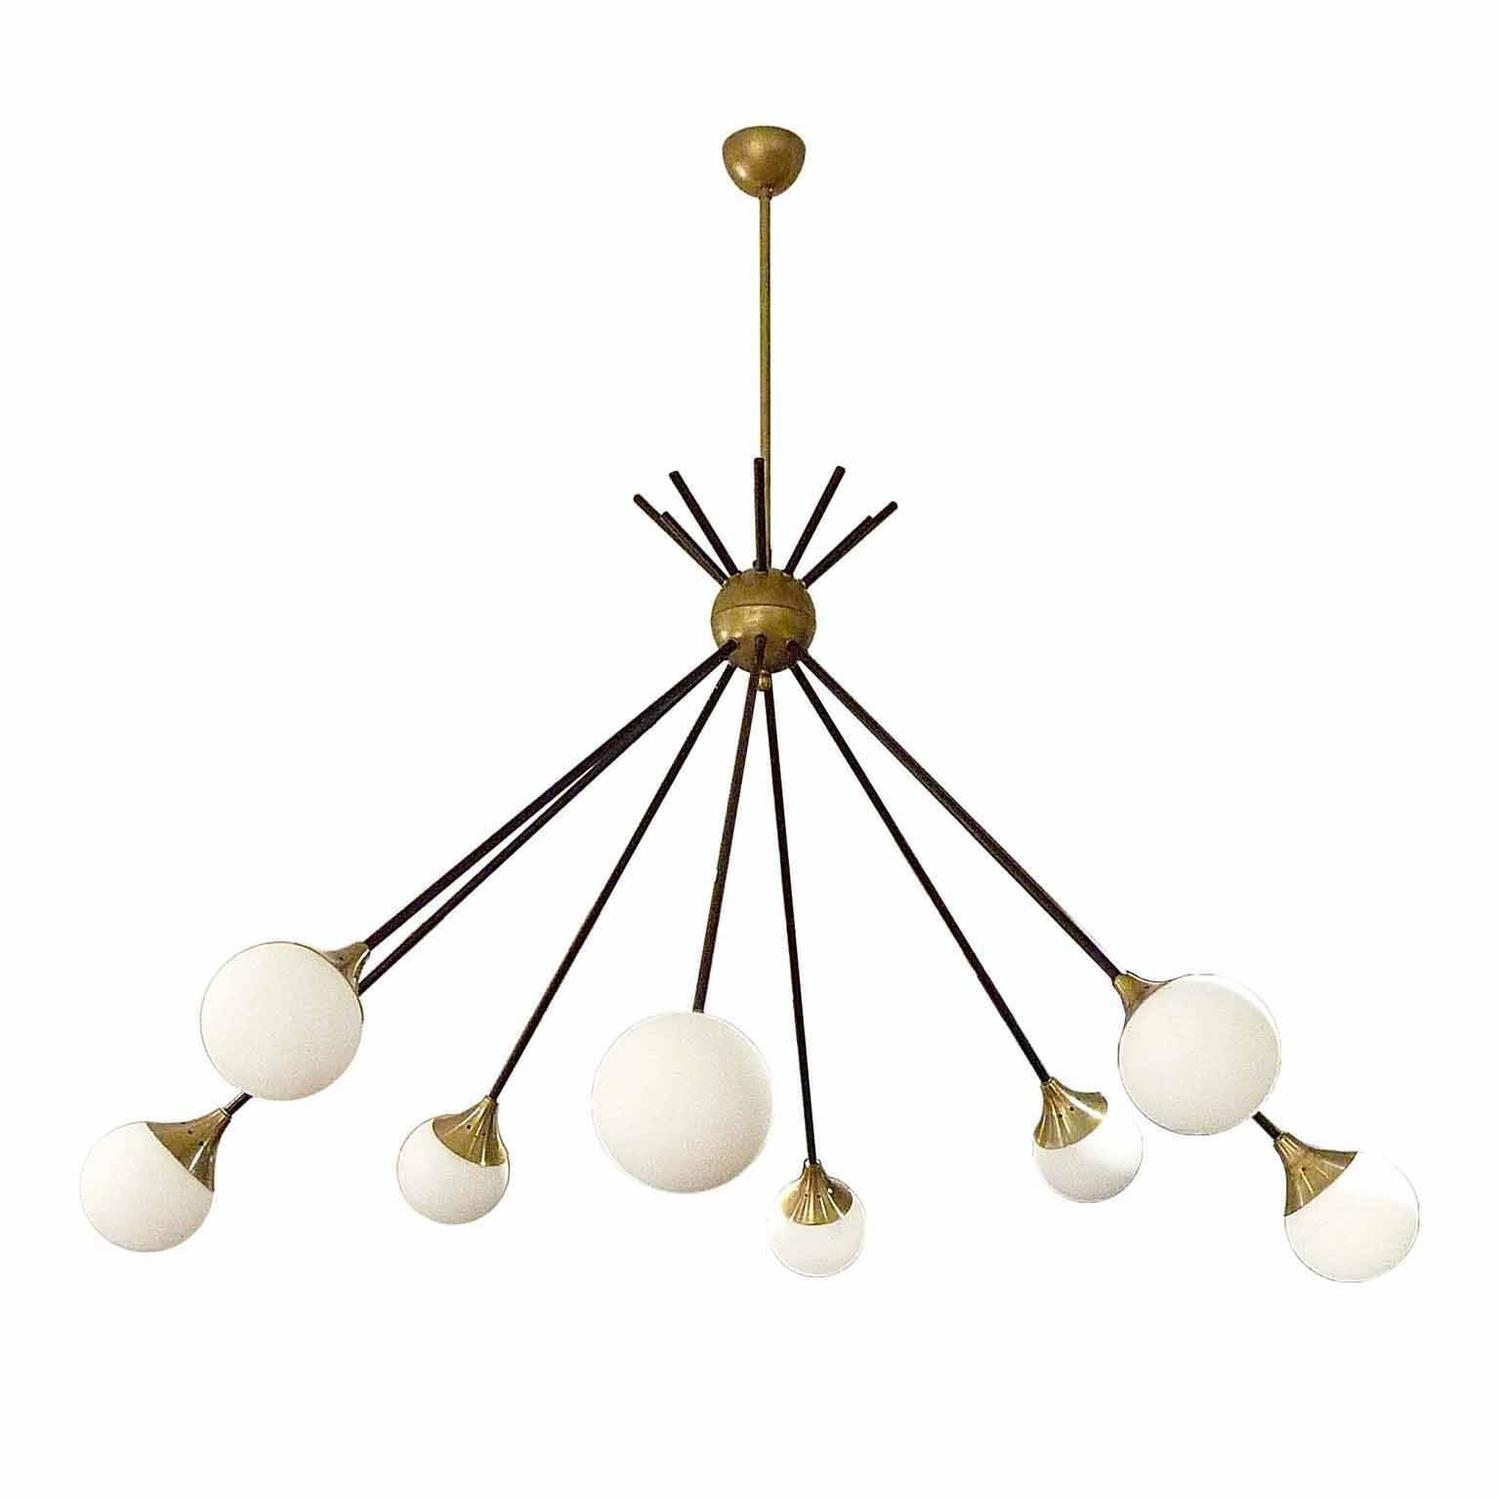 Very Elegant Eight Light Italian Chandelier In The Style Of Intended For Italian Chandelier Style (Image 15 of 15)